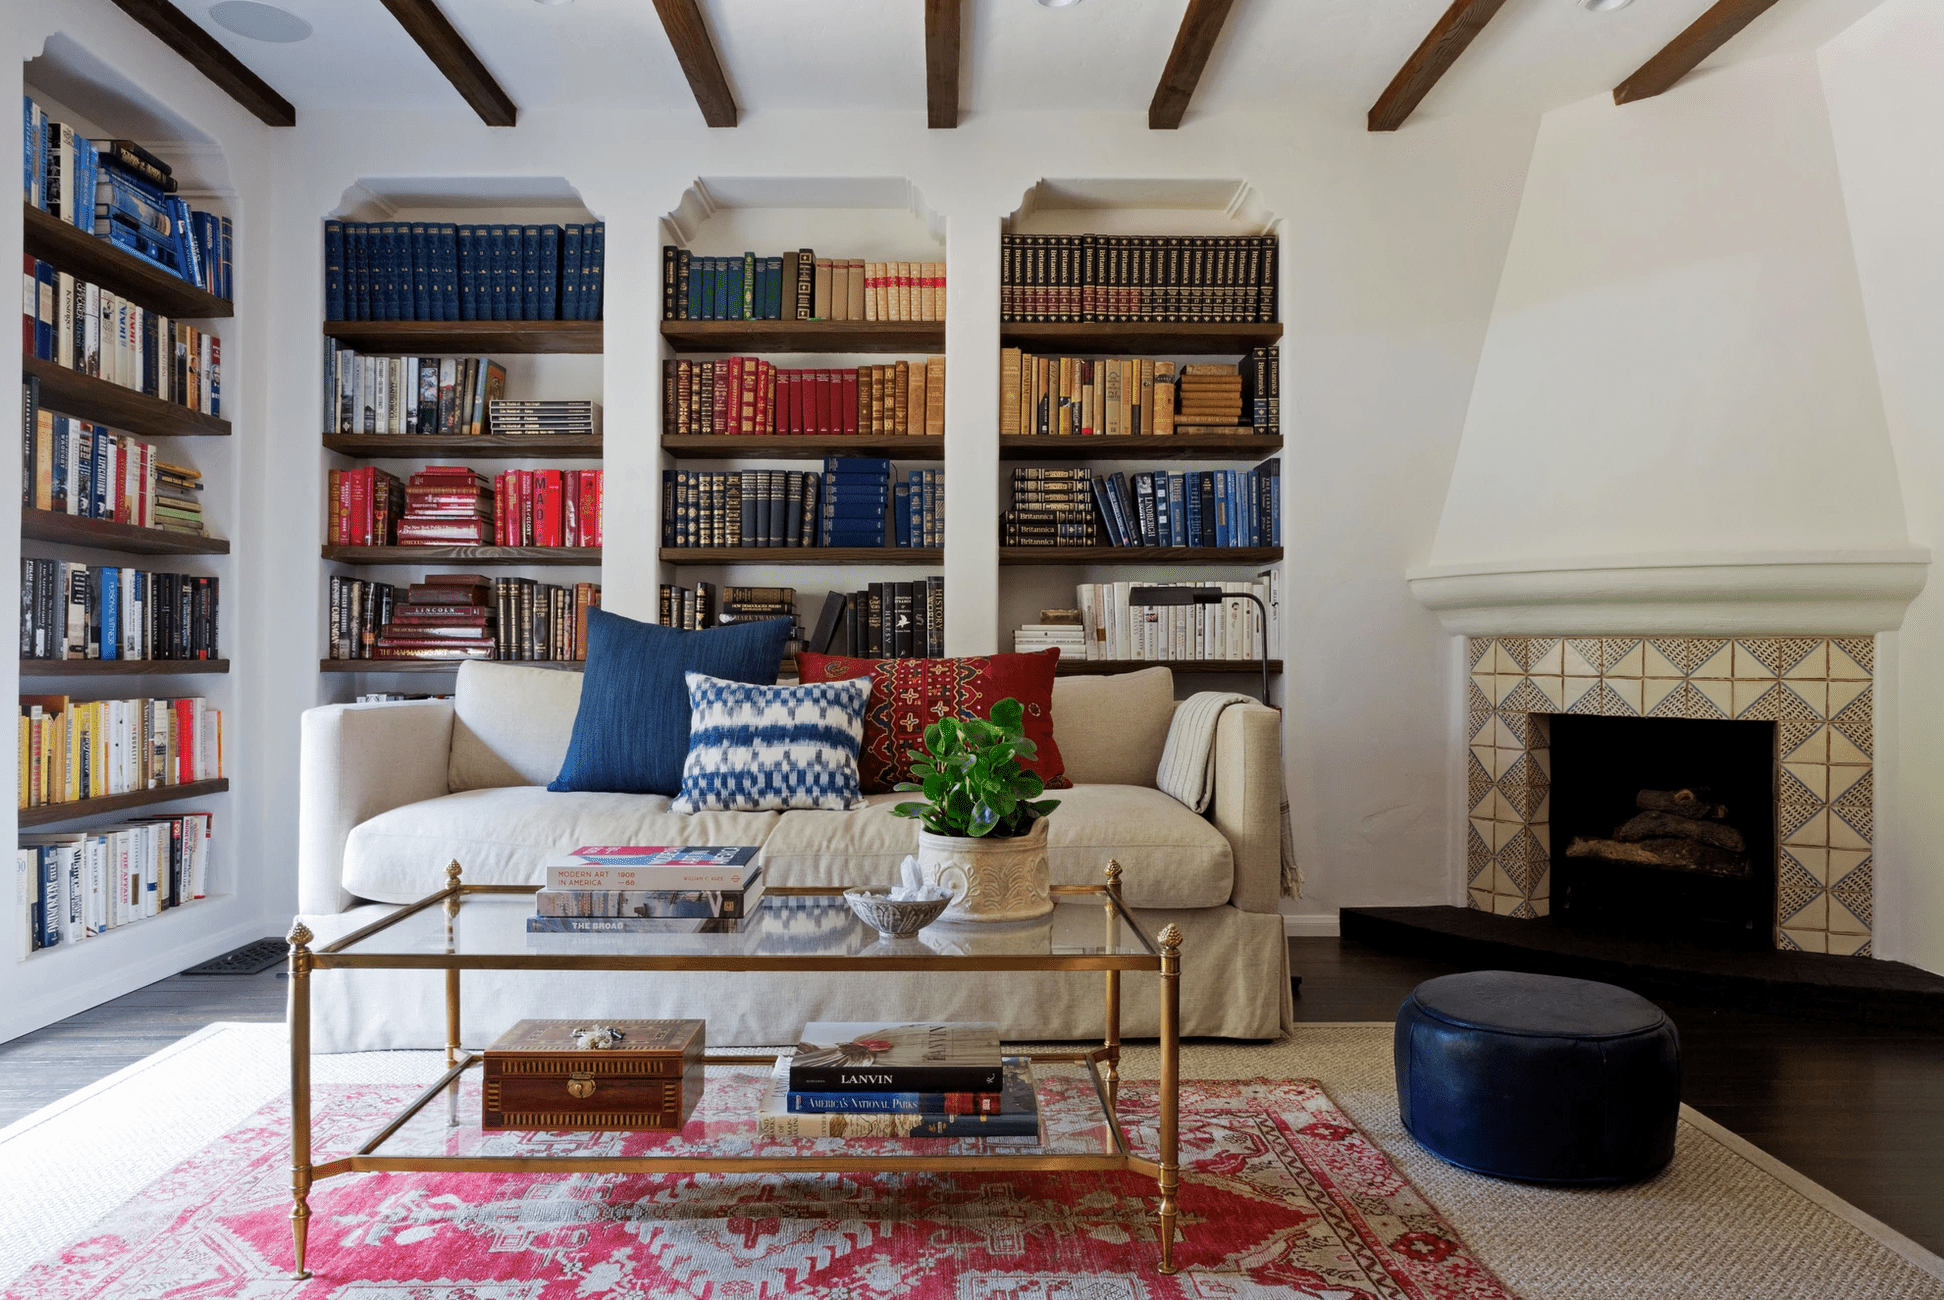 Home library with layered rugs.